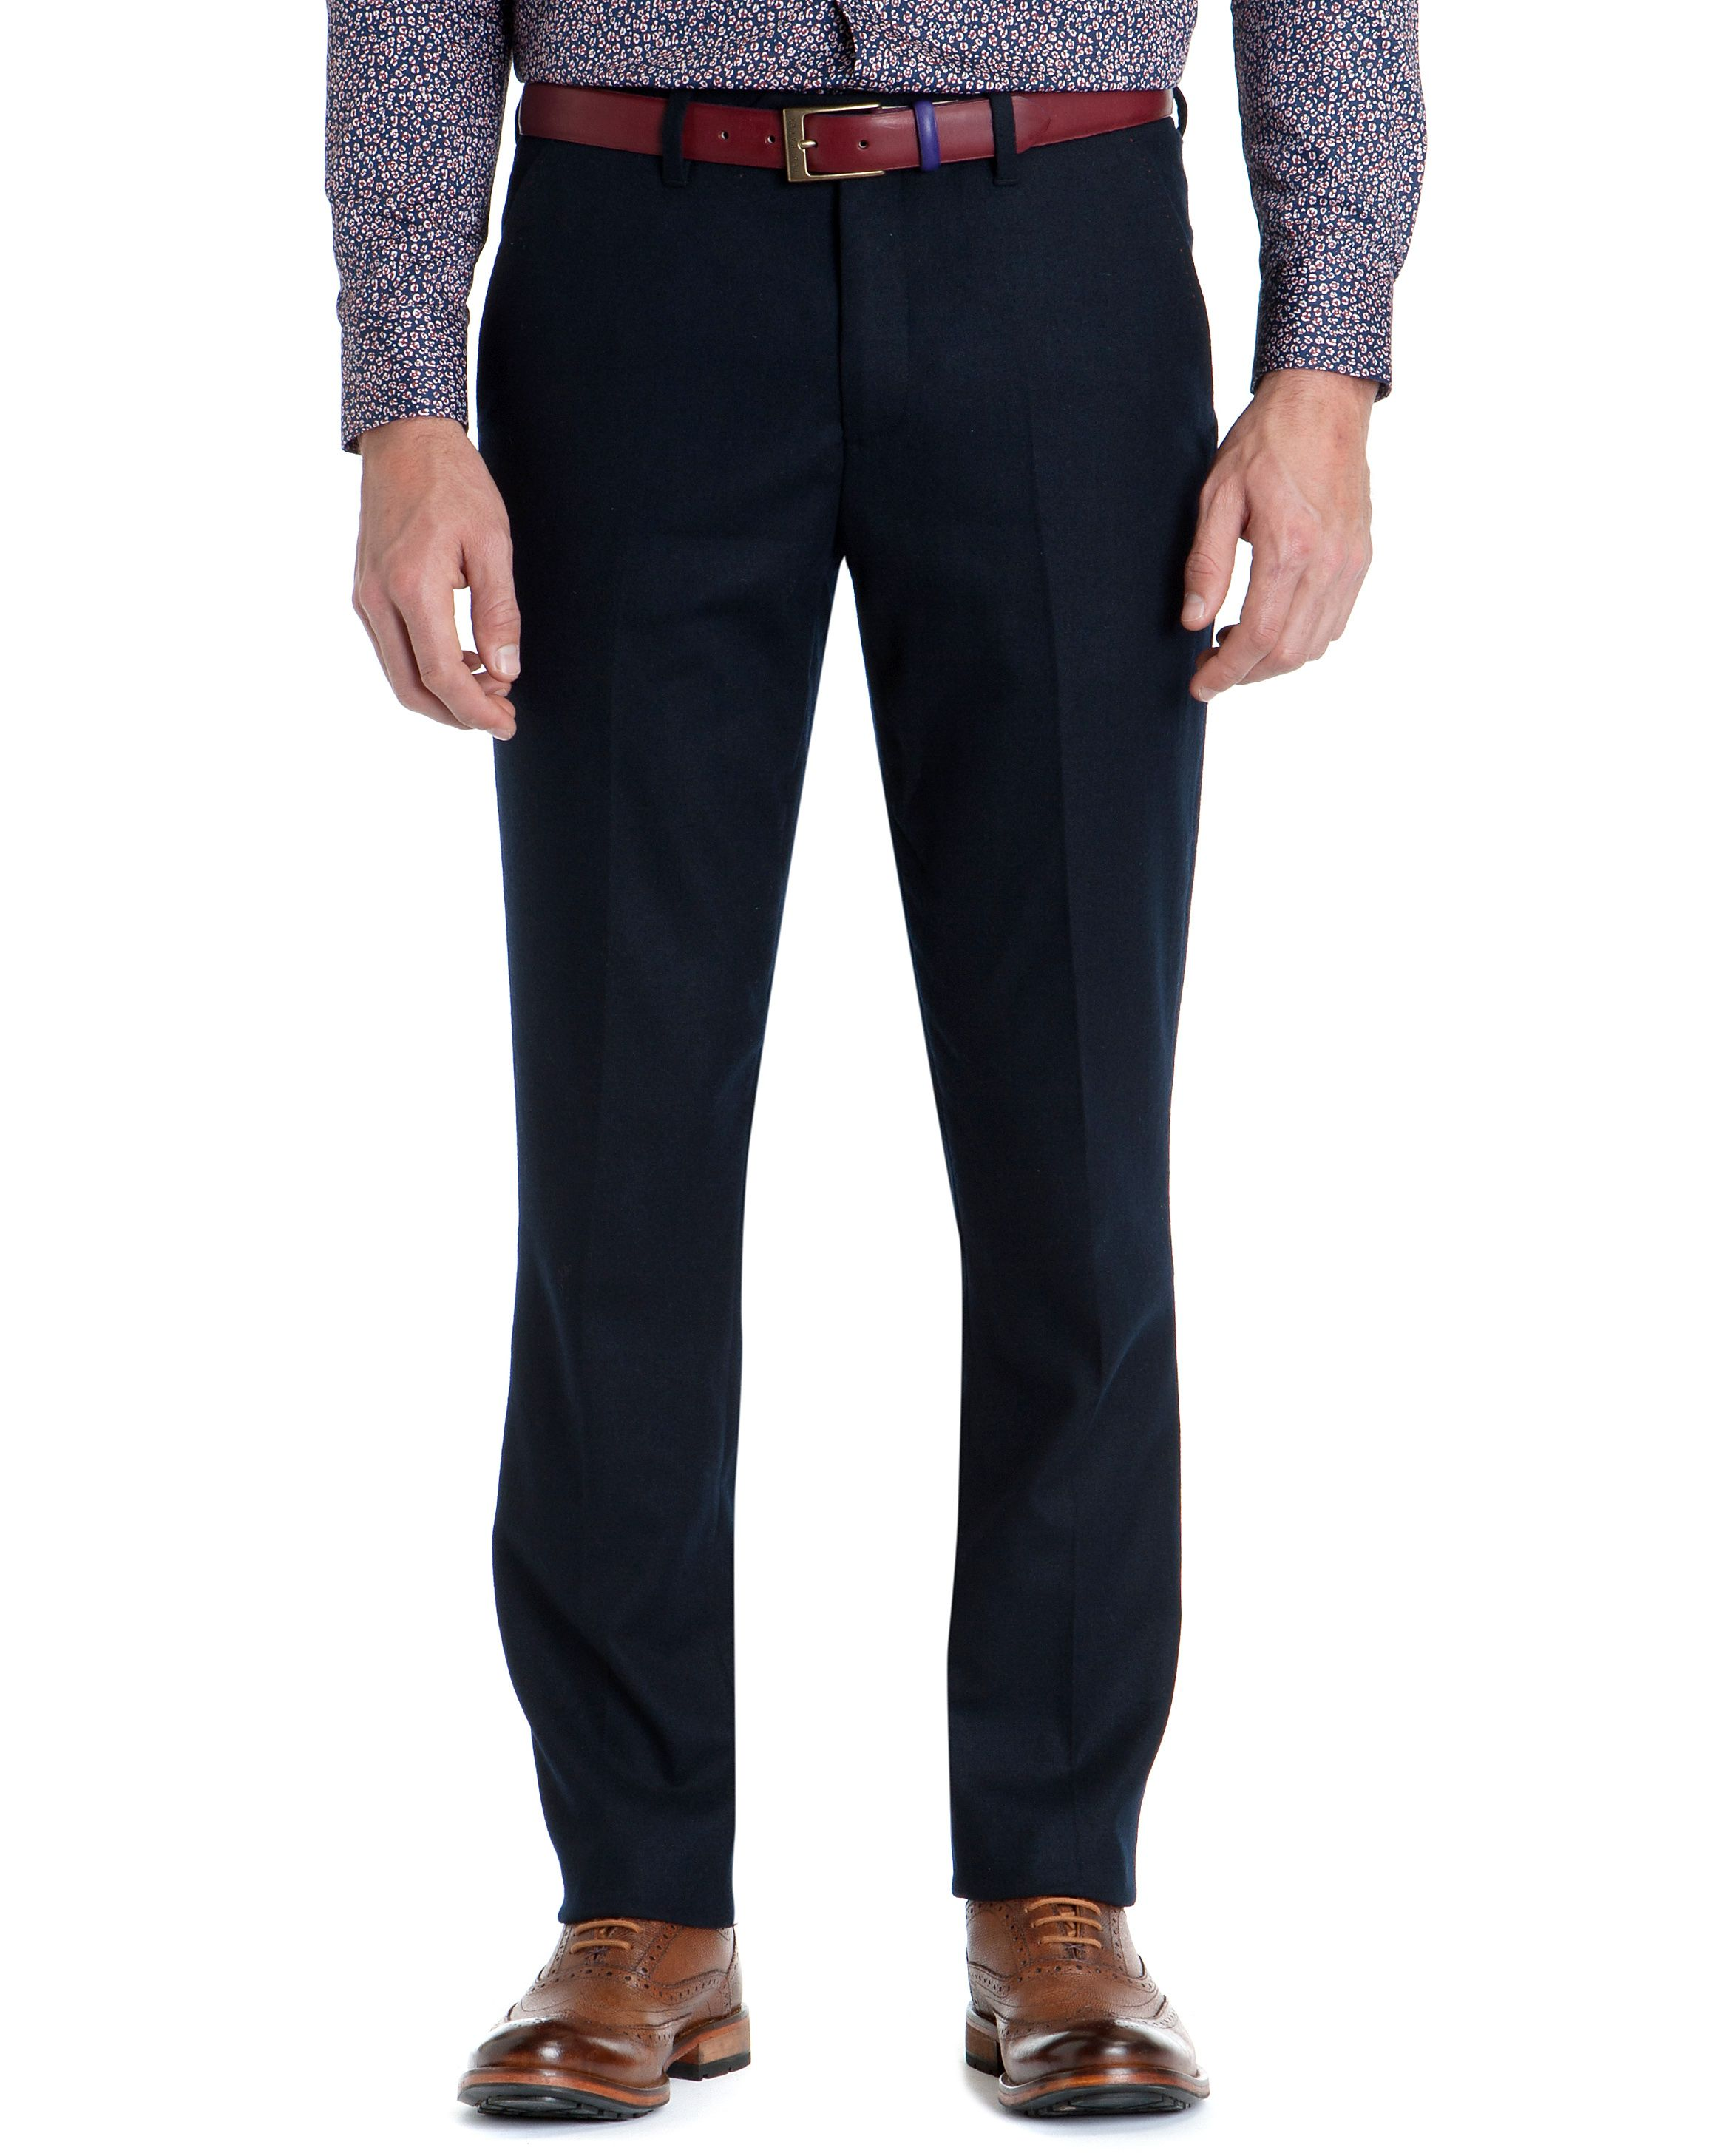 Foretro trousers